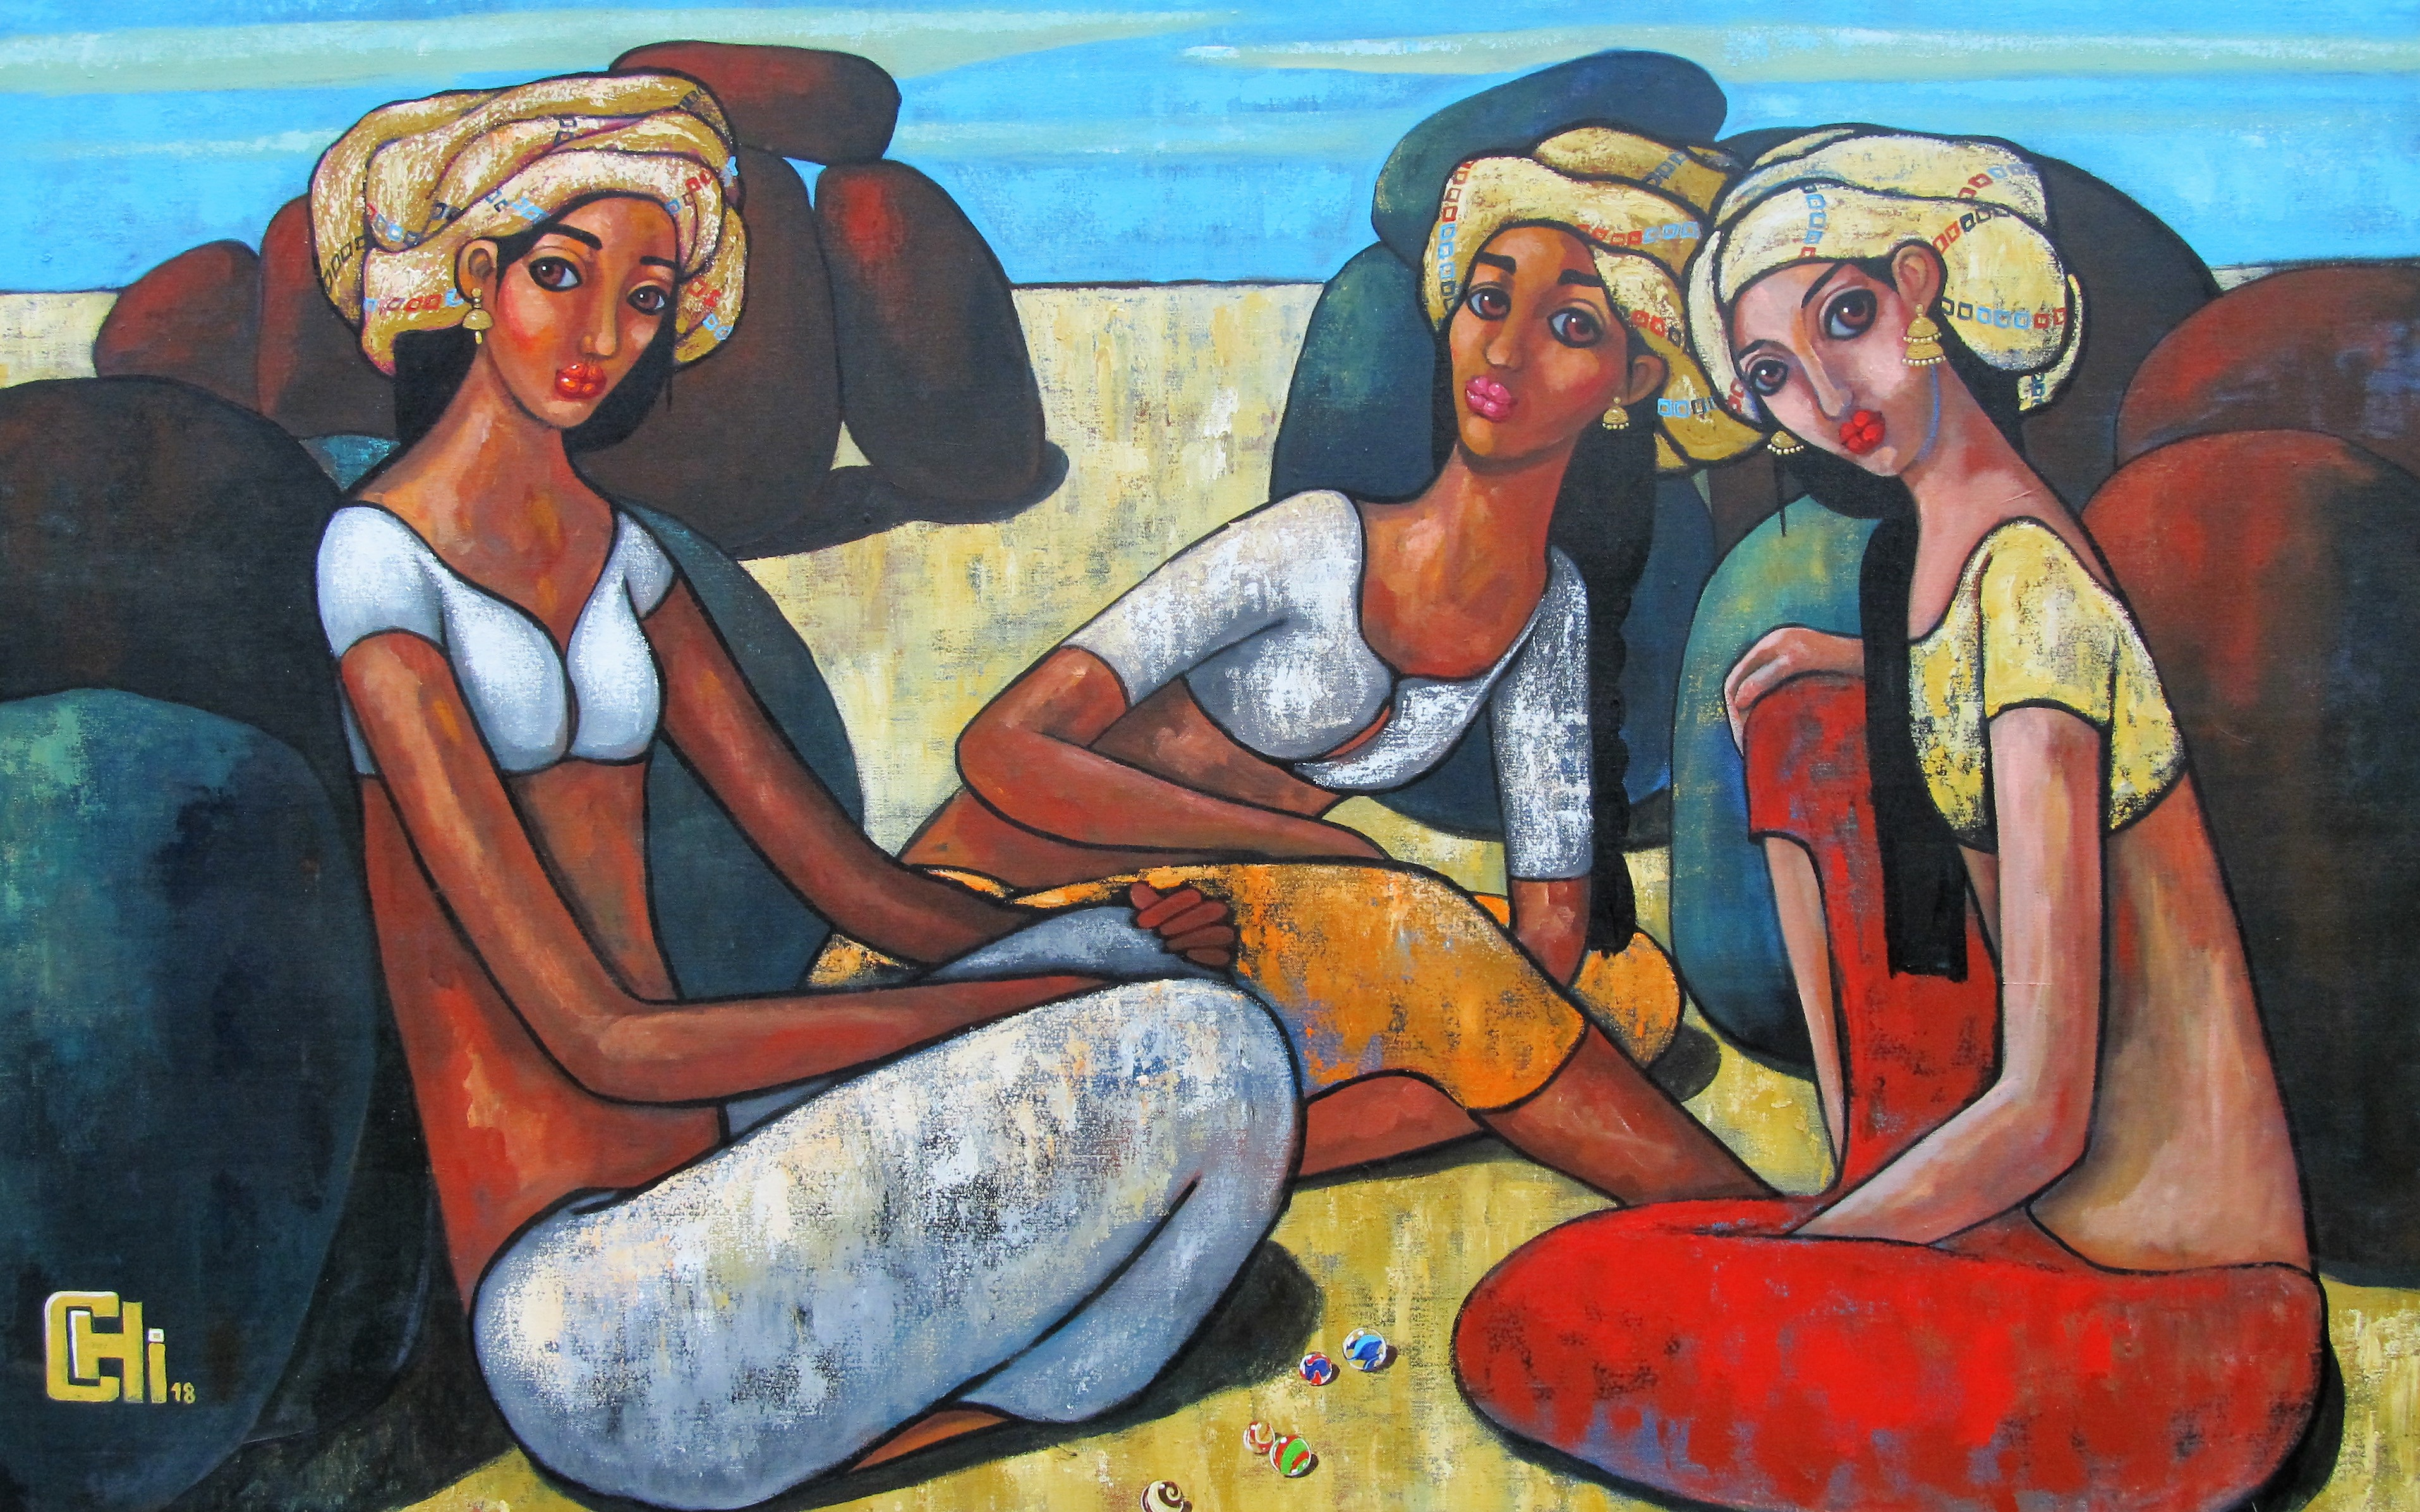 Girls playing marbles 60x 40 acrylics on canvas INR 1,65,000